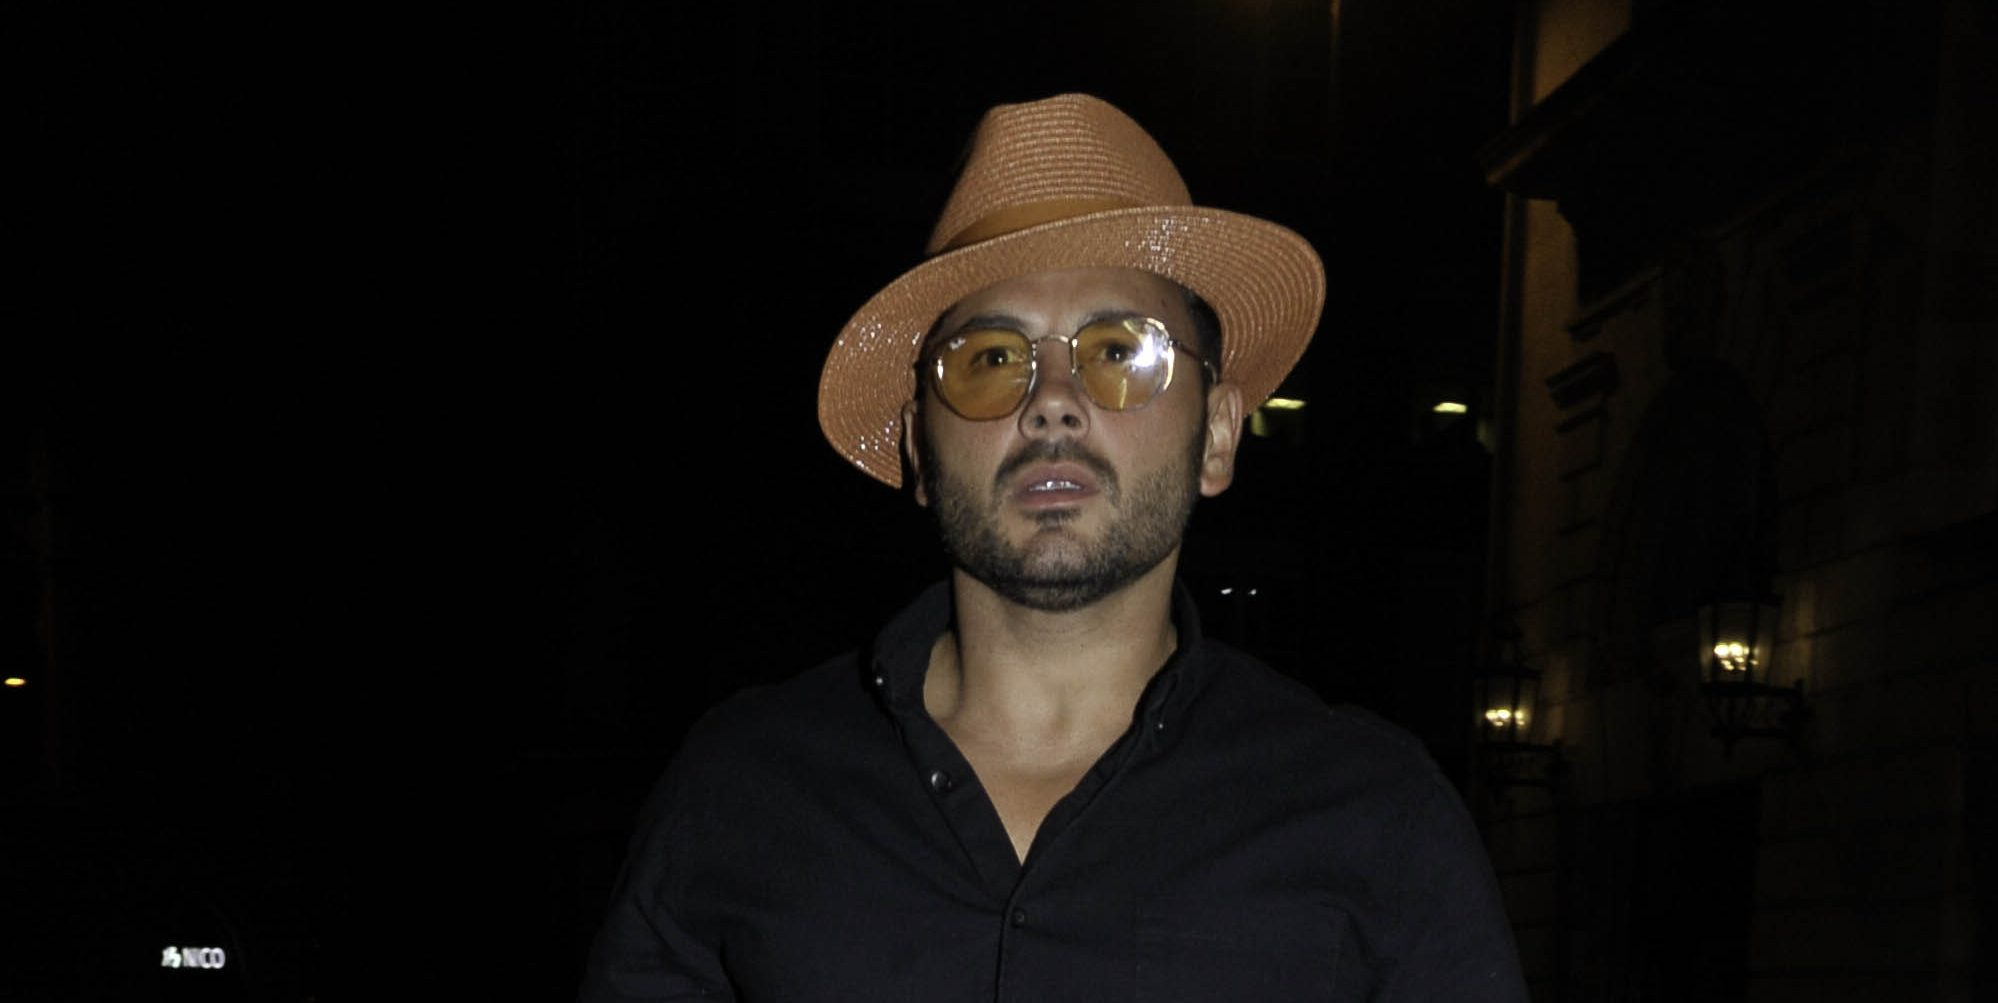 Former Coronation Street star Ryan Thomas shares throwback picture with brother Adam